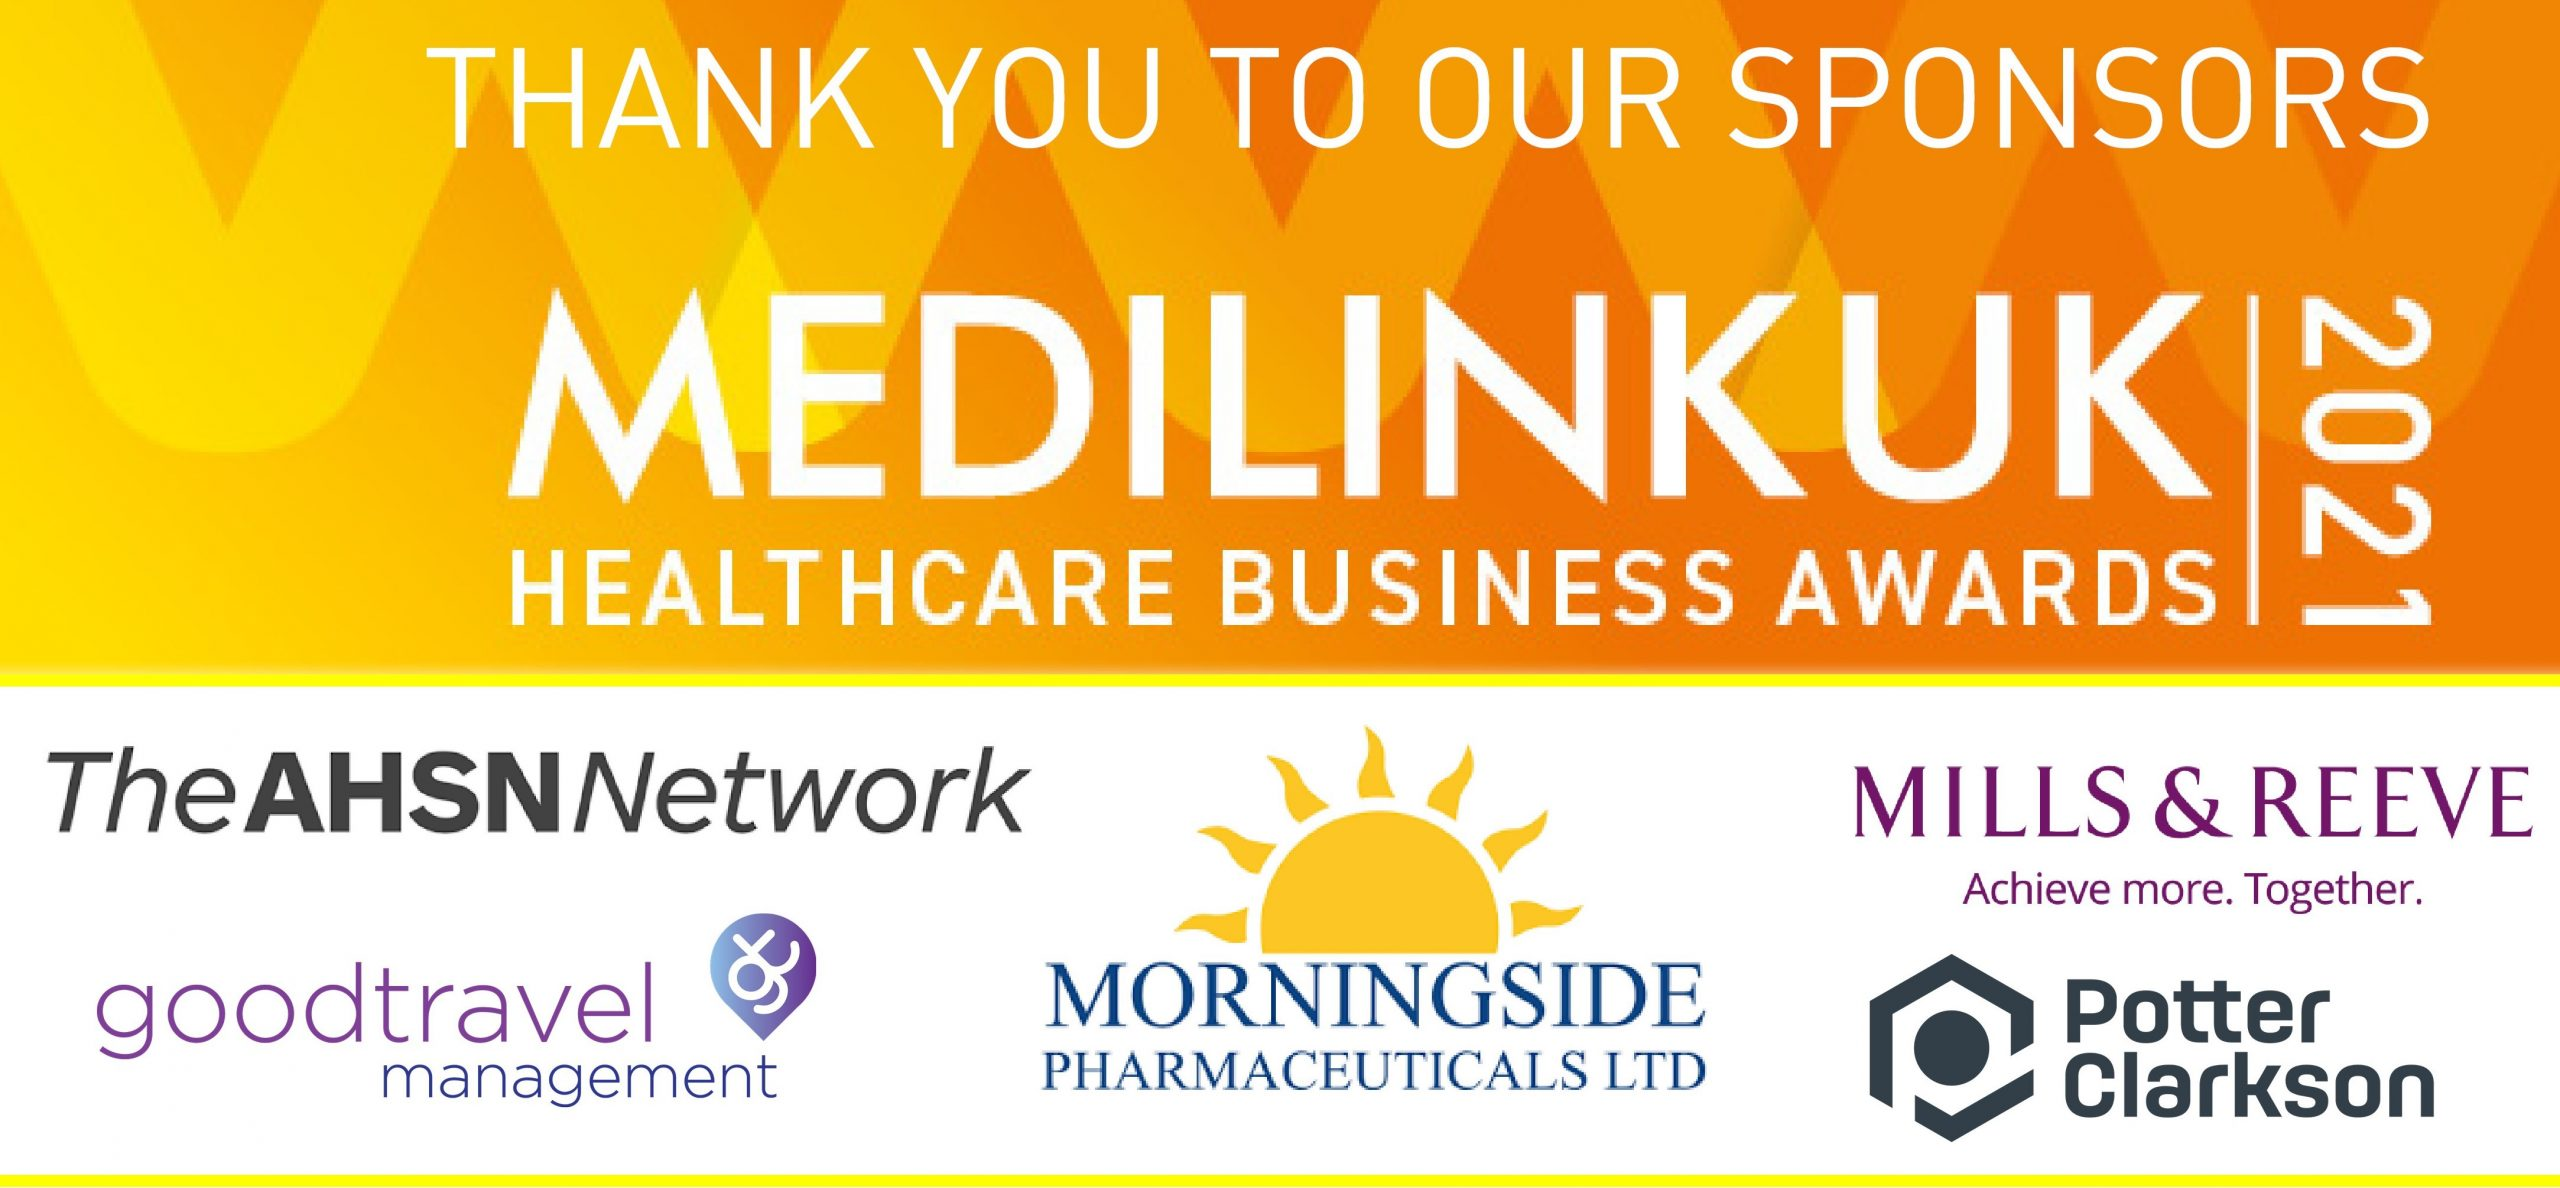 ANOTHER YEAR OF CELEBRATION AT THE VIRTUAL MEDILINK UK HEALTHCARE BUSINESS AWARDS